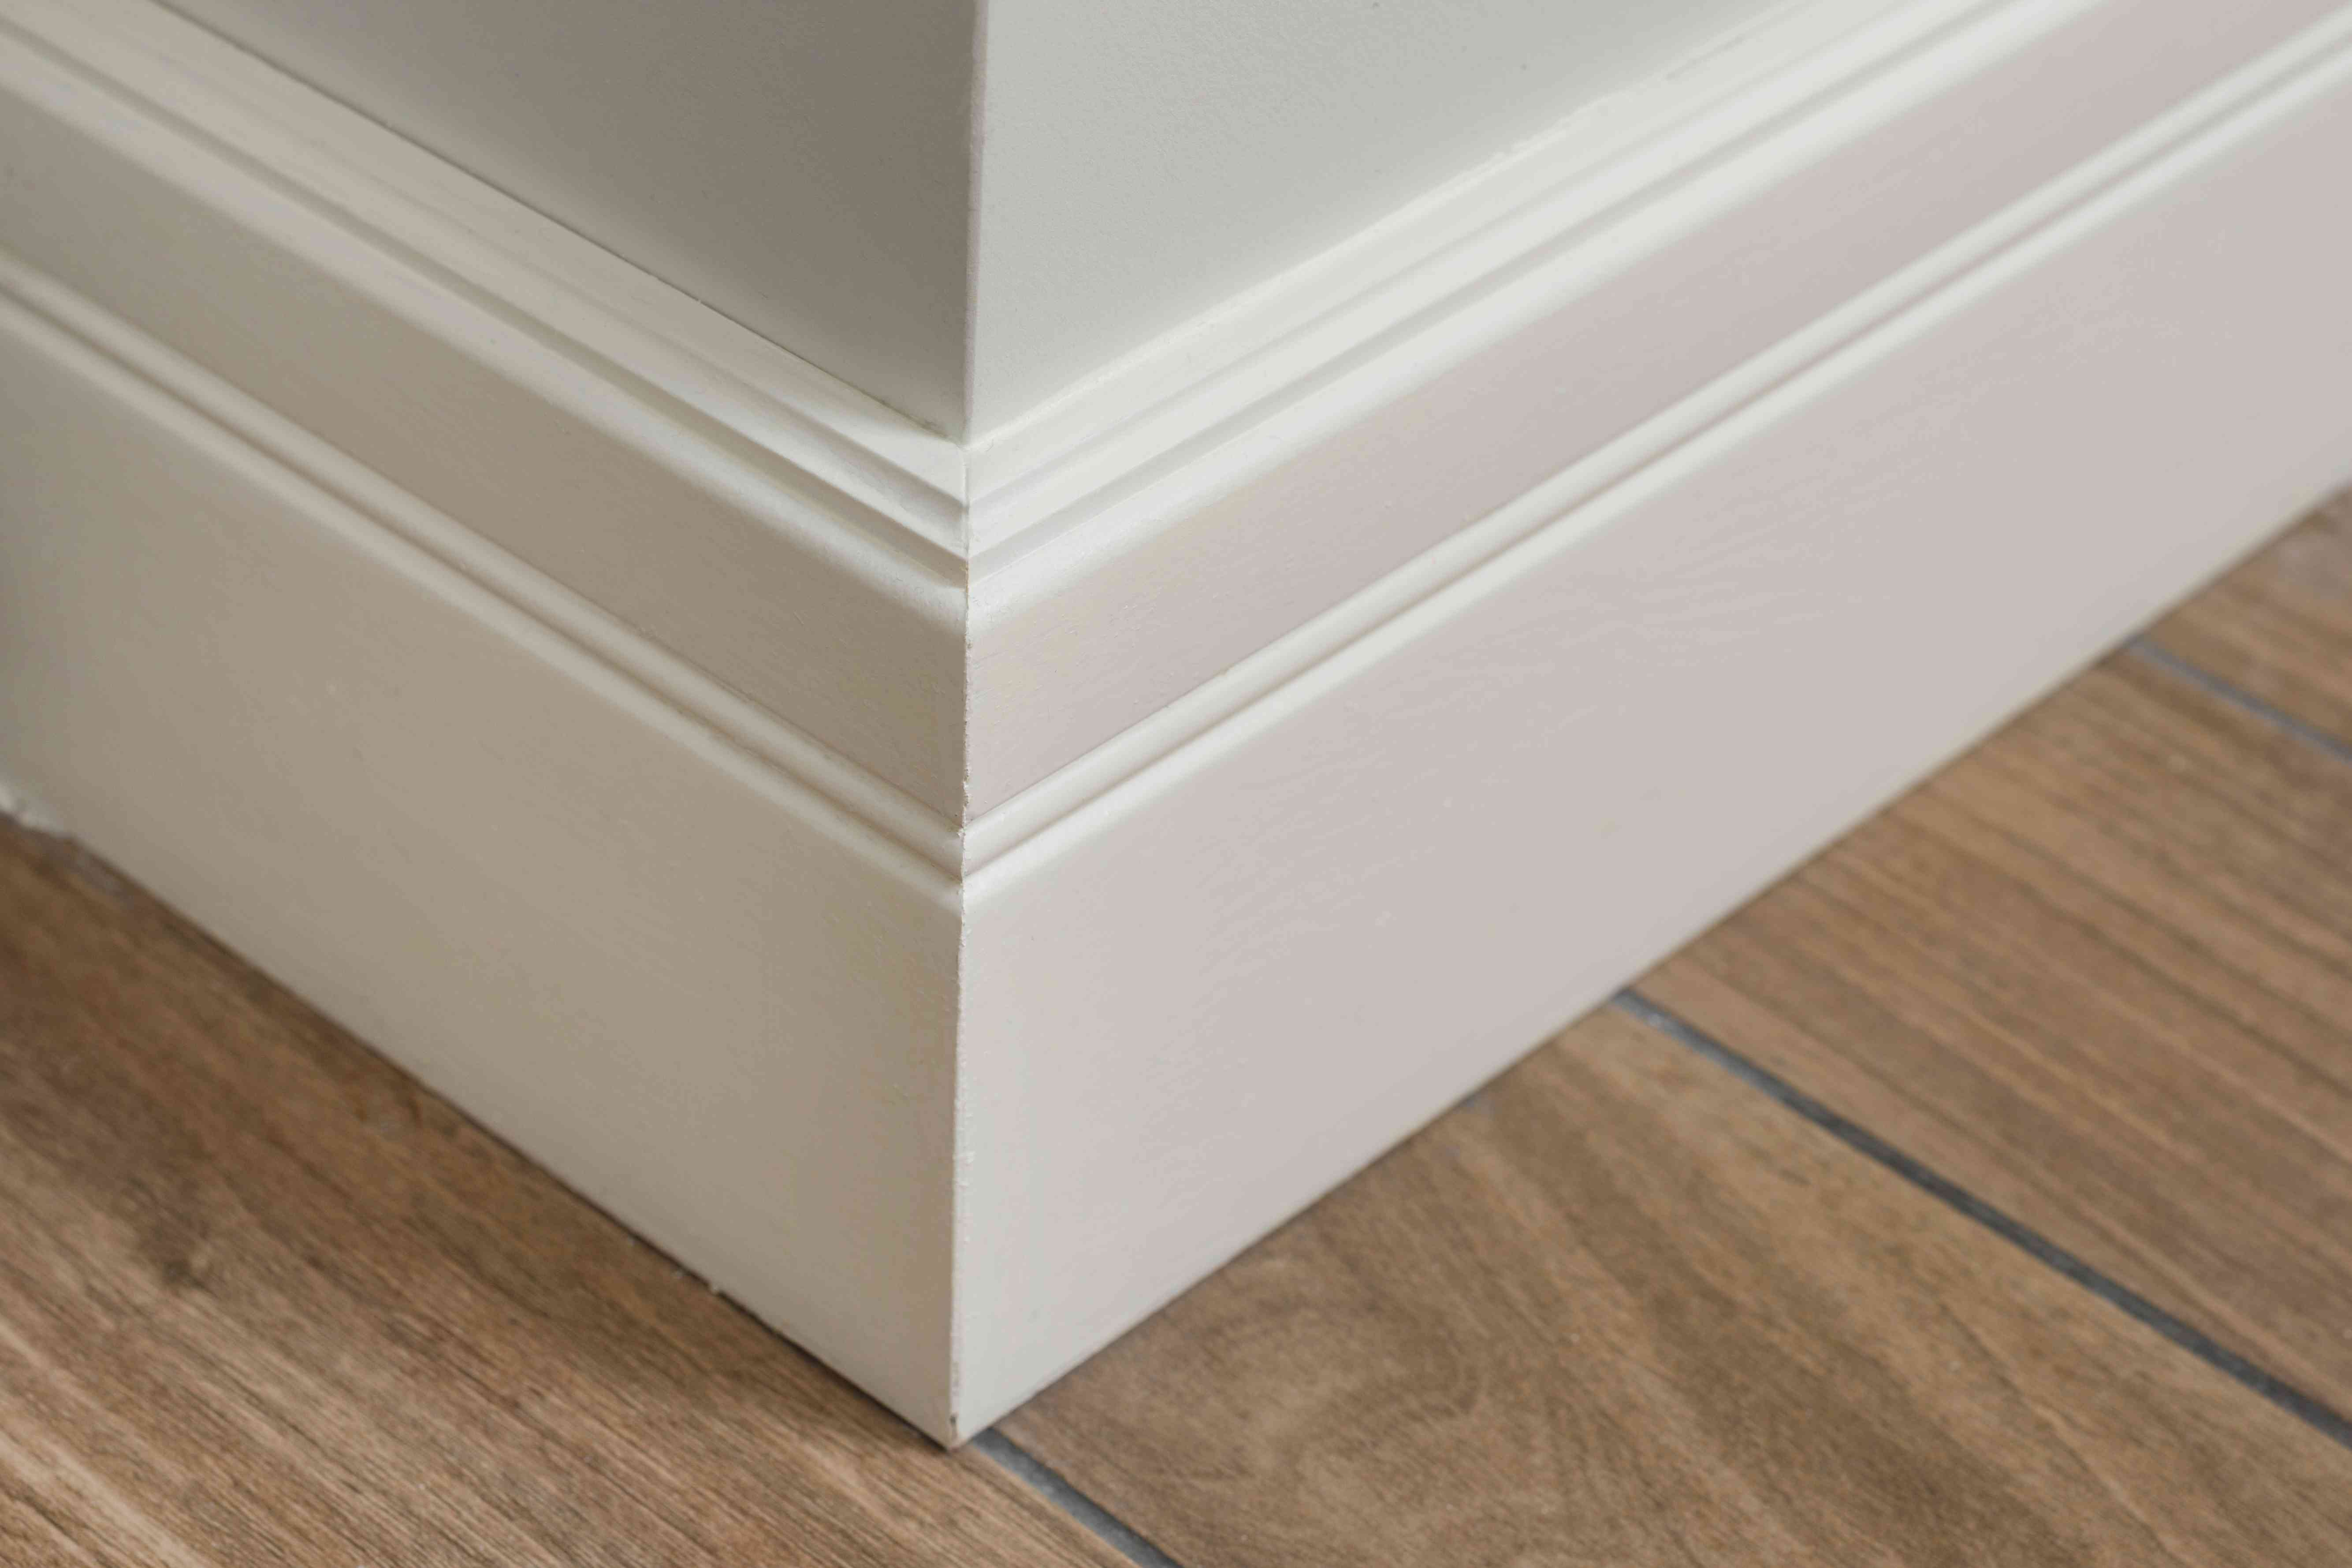 Molding in the interior, baseboard corner. Light matte wall with tiles immitating hardwood flooring